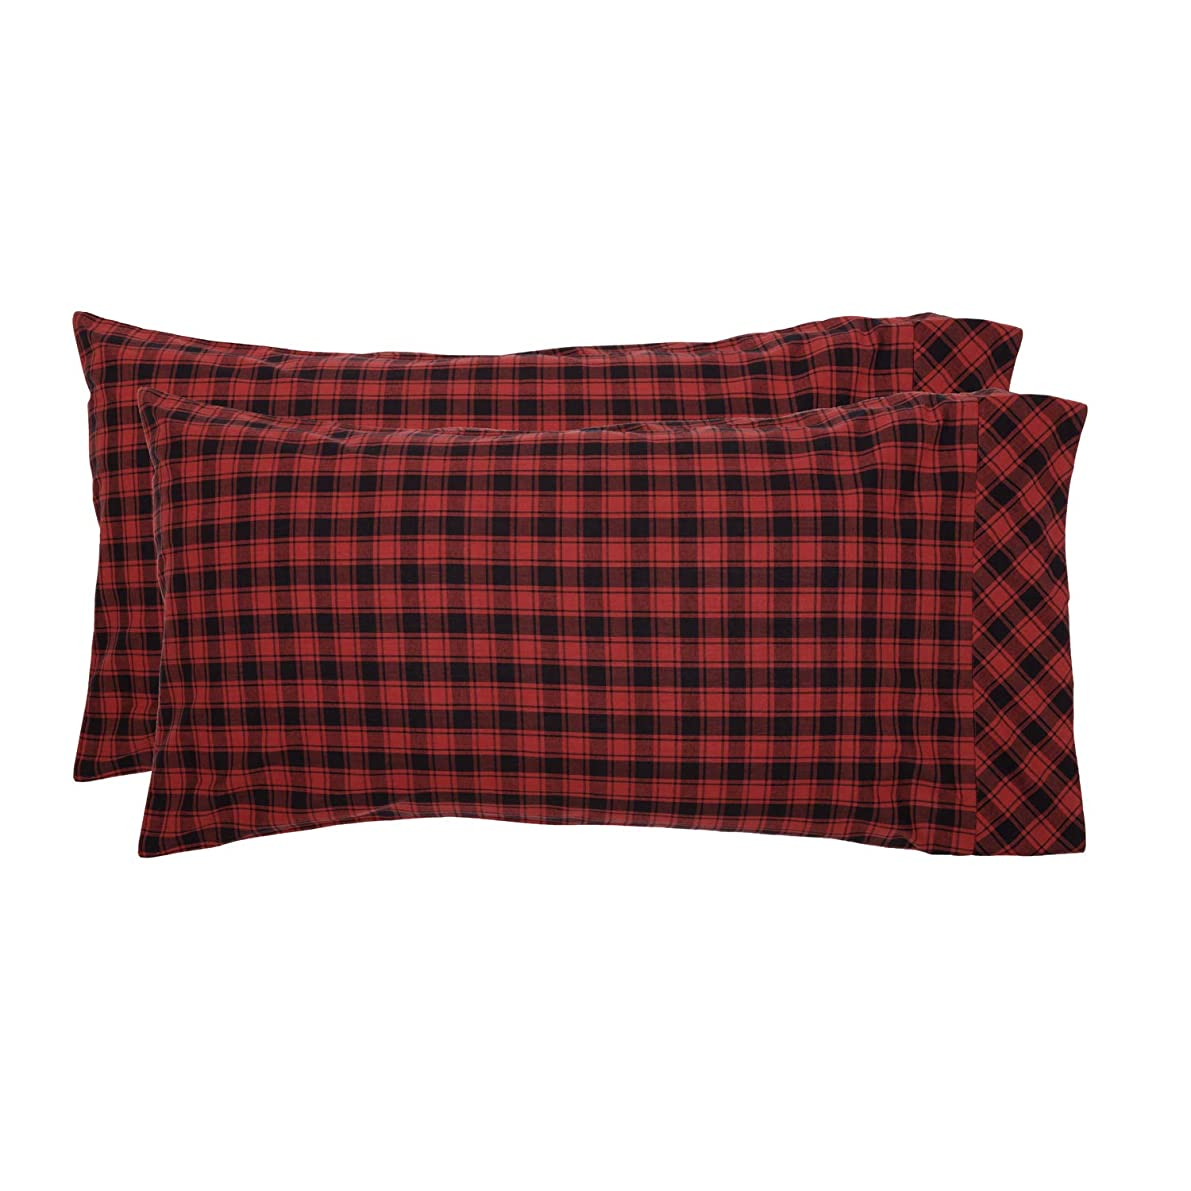 VHC Brands Rustic Bedding Shasta Cabin Cotton Buffalo Check King Pillow Case Set of 2, Chili Pepper Red